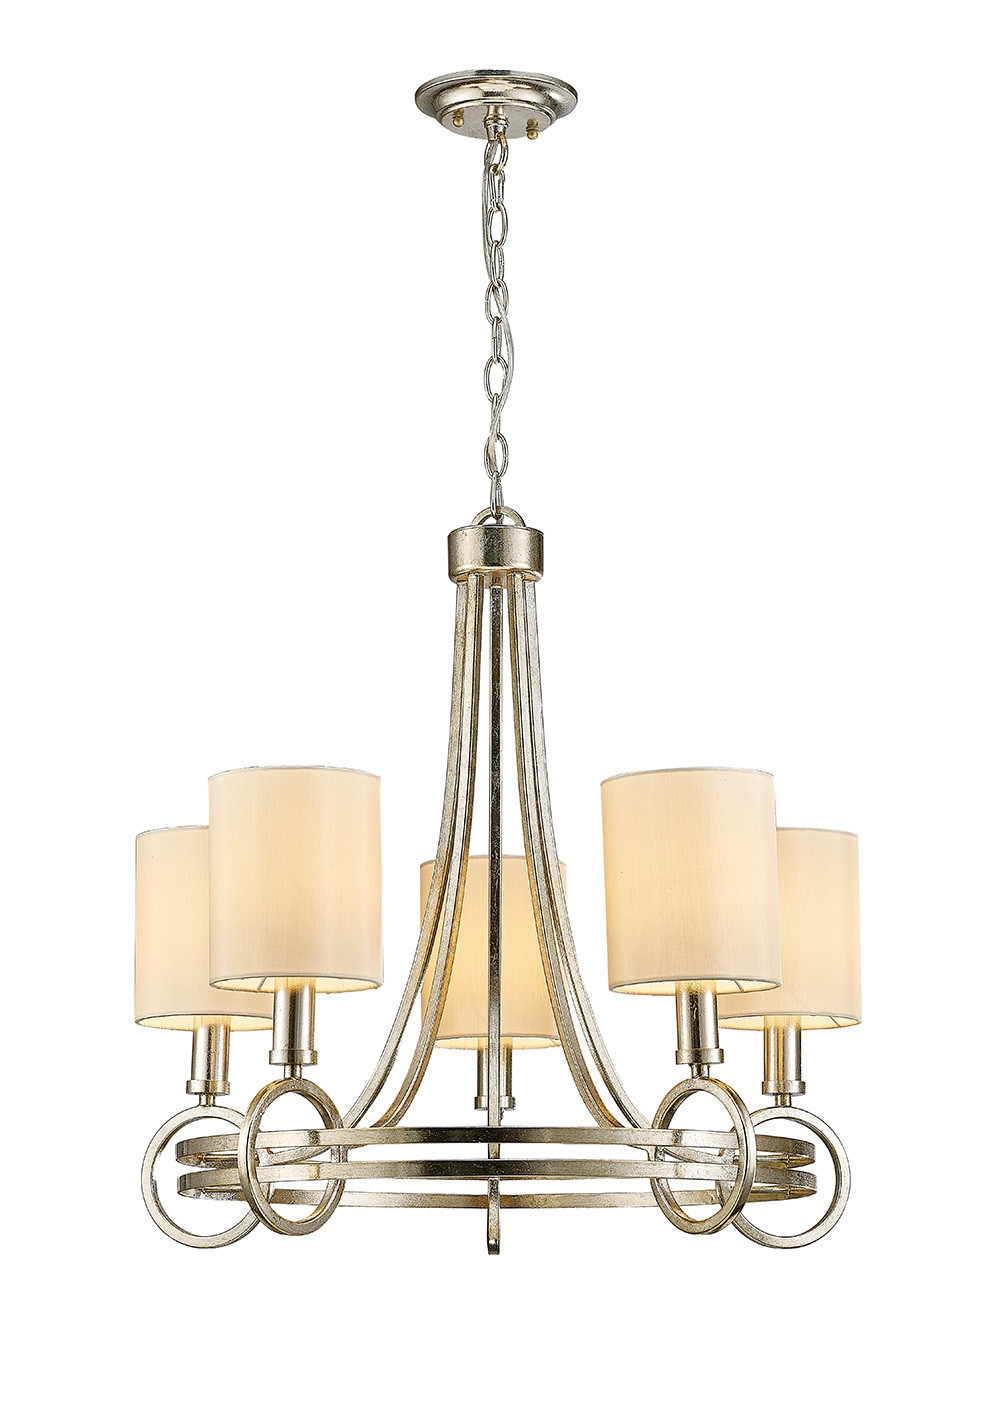 Isabella Pendant With Beige Shade 5 Light E14 Antique Silver/Teak Plated